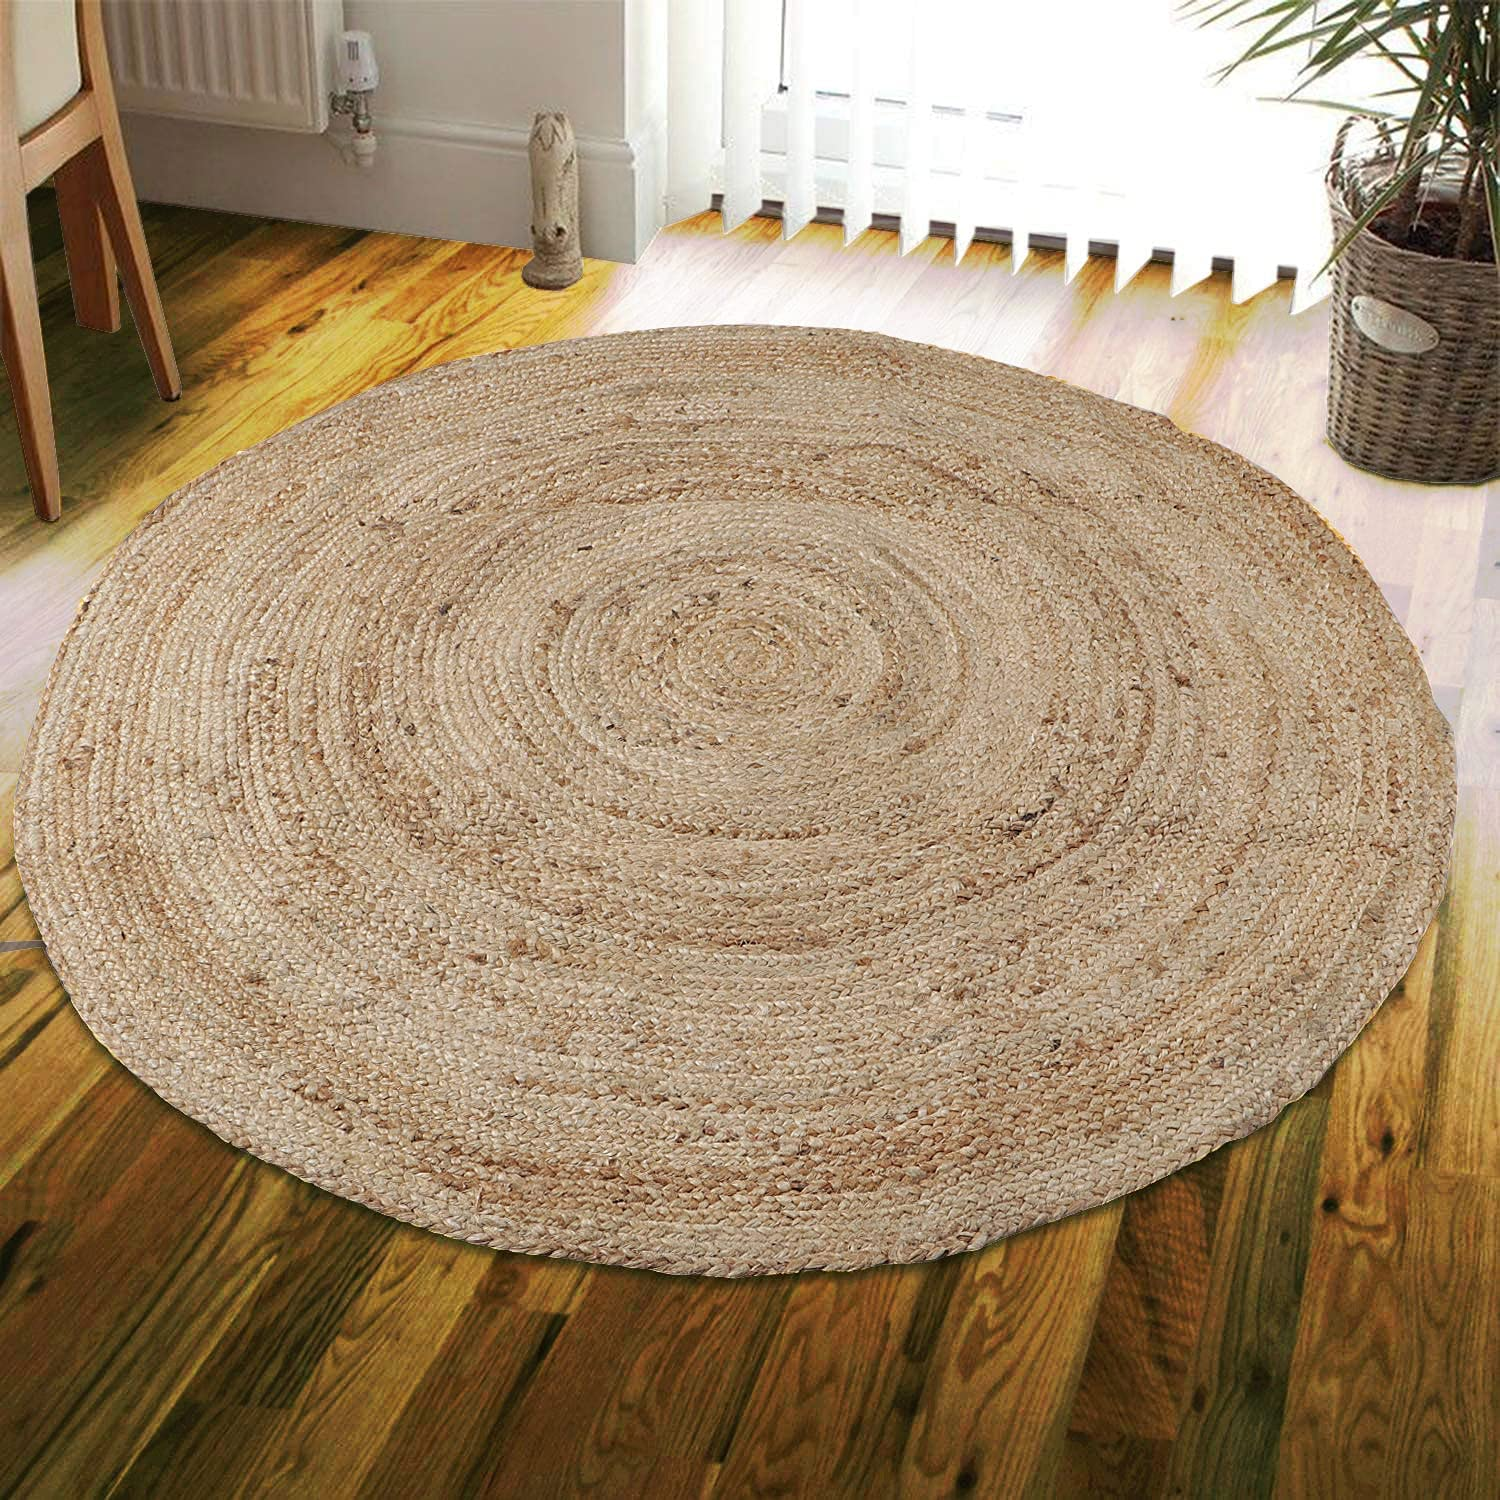 trust Natural Area Rugs Bargain - Round Jute Rug Third Eye Export Collection